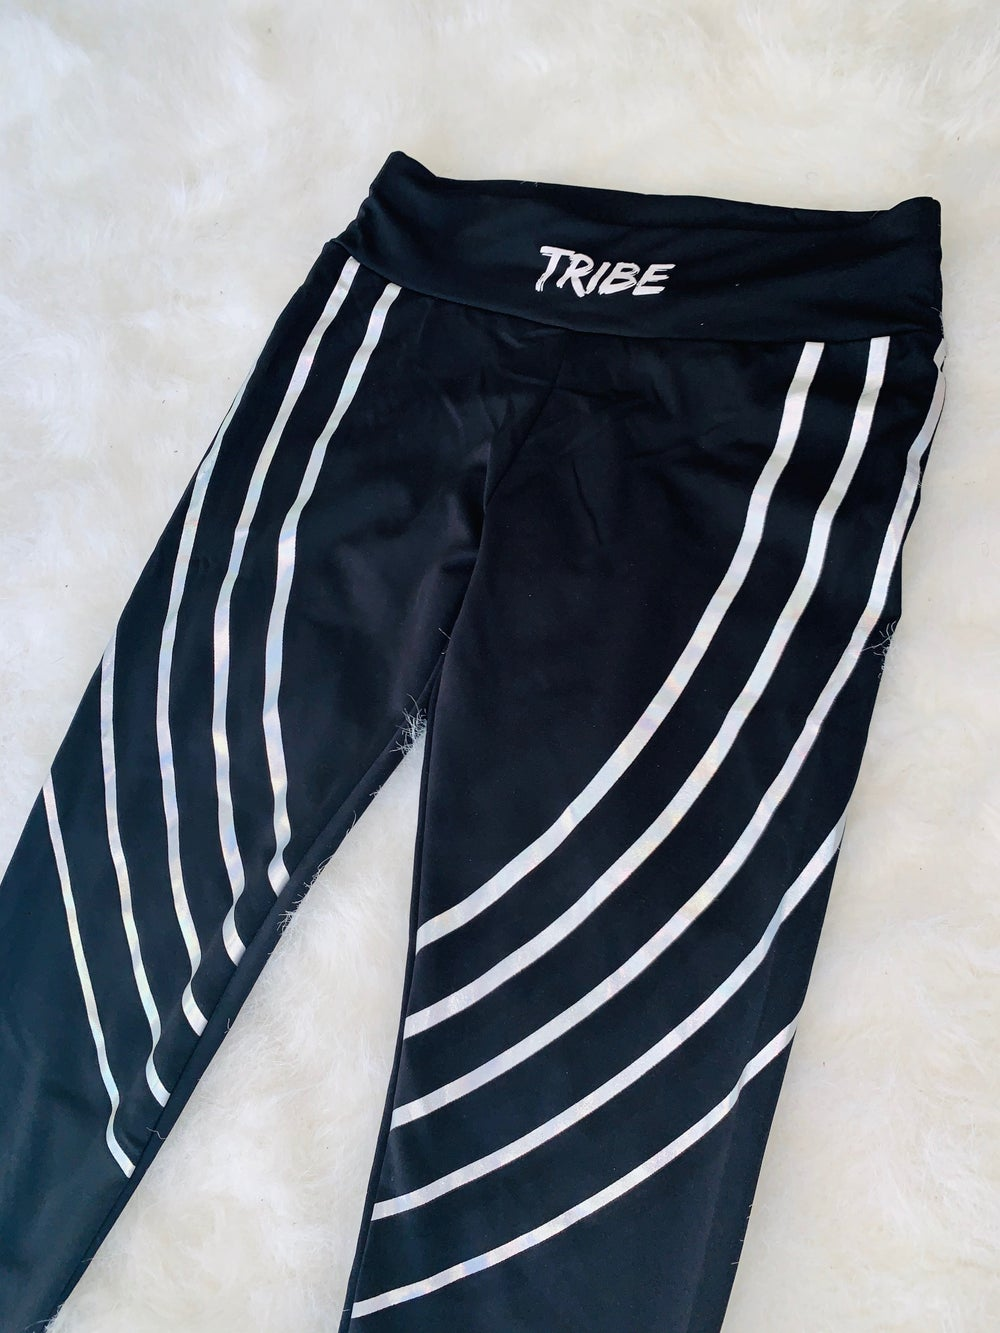 Image of Chiefy Tribe Black legging